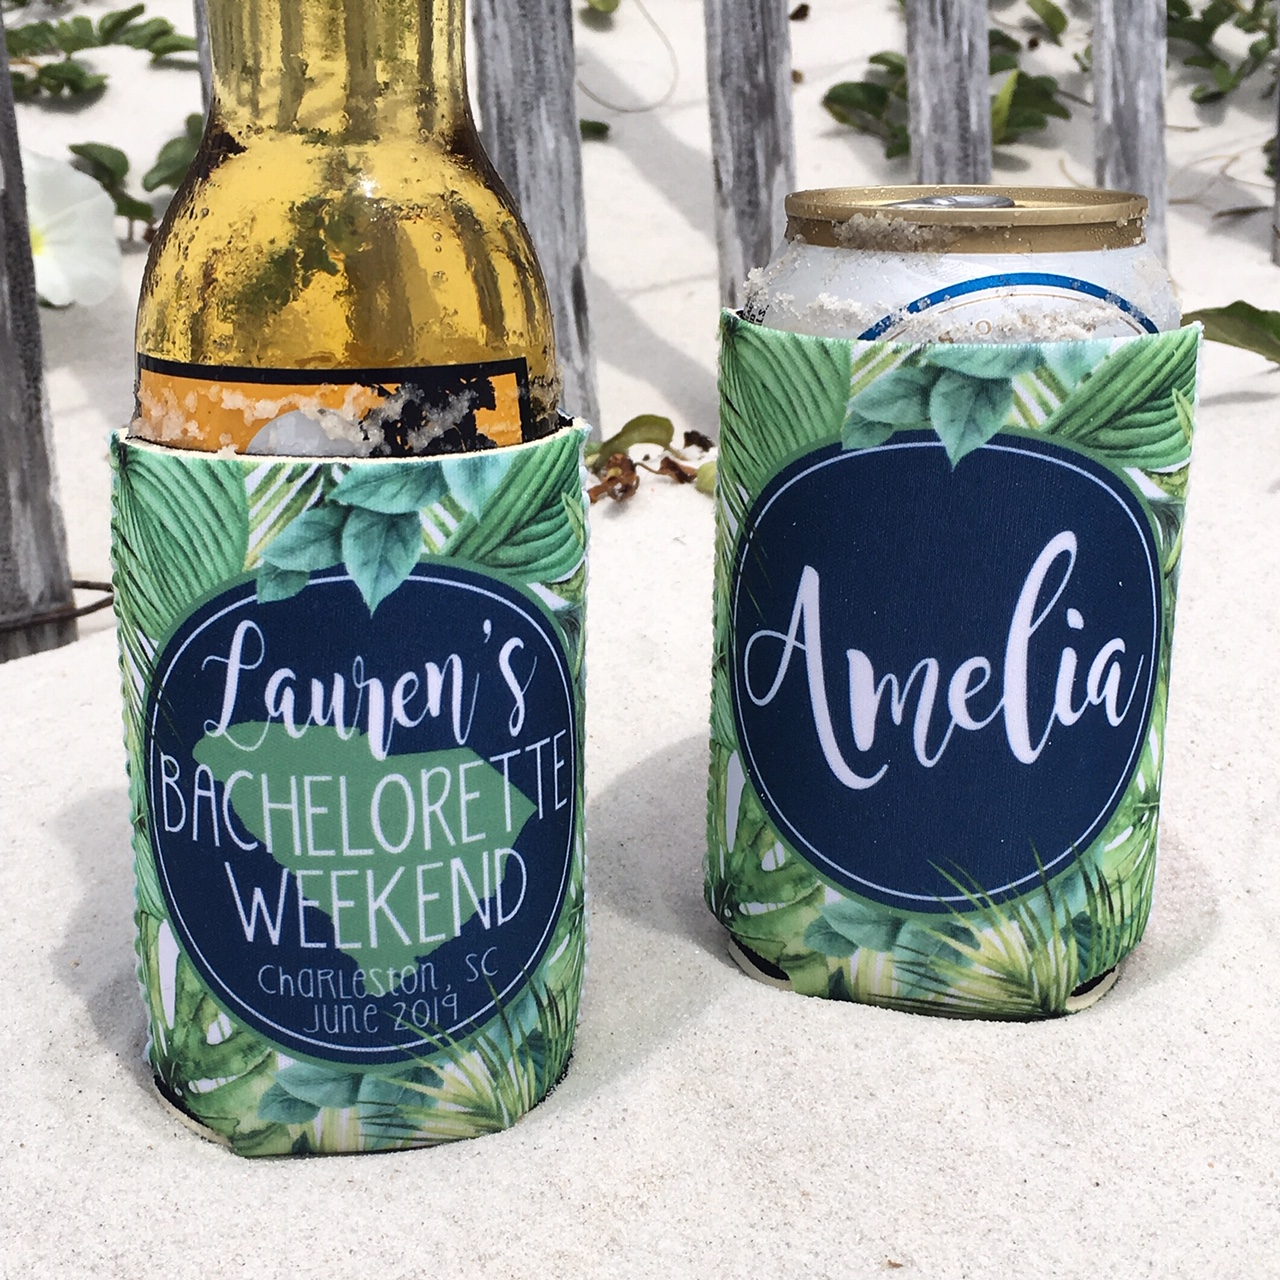 Tropical Bachelorette Party Beach Vacation KOOZIES® or Neoprene coolies - Tropical Palm Leaves - State